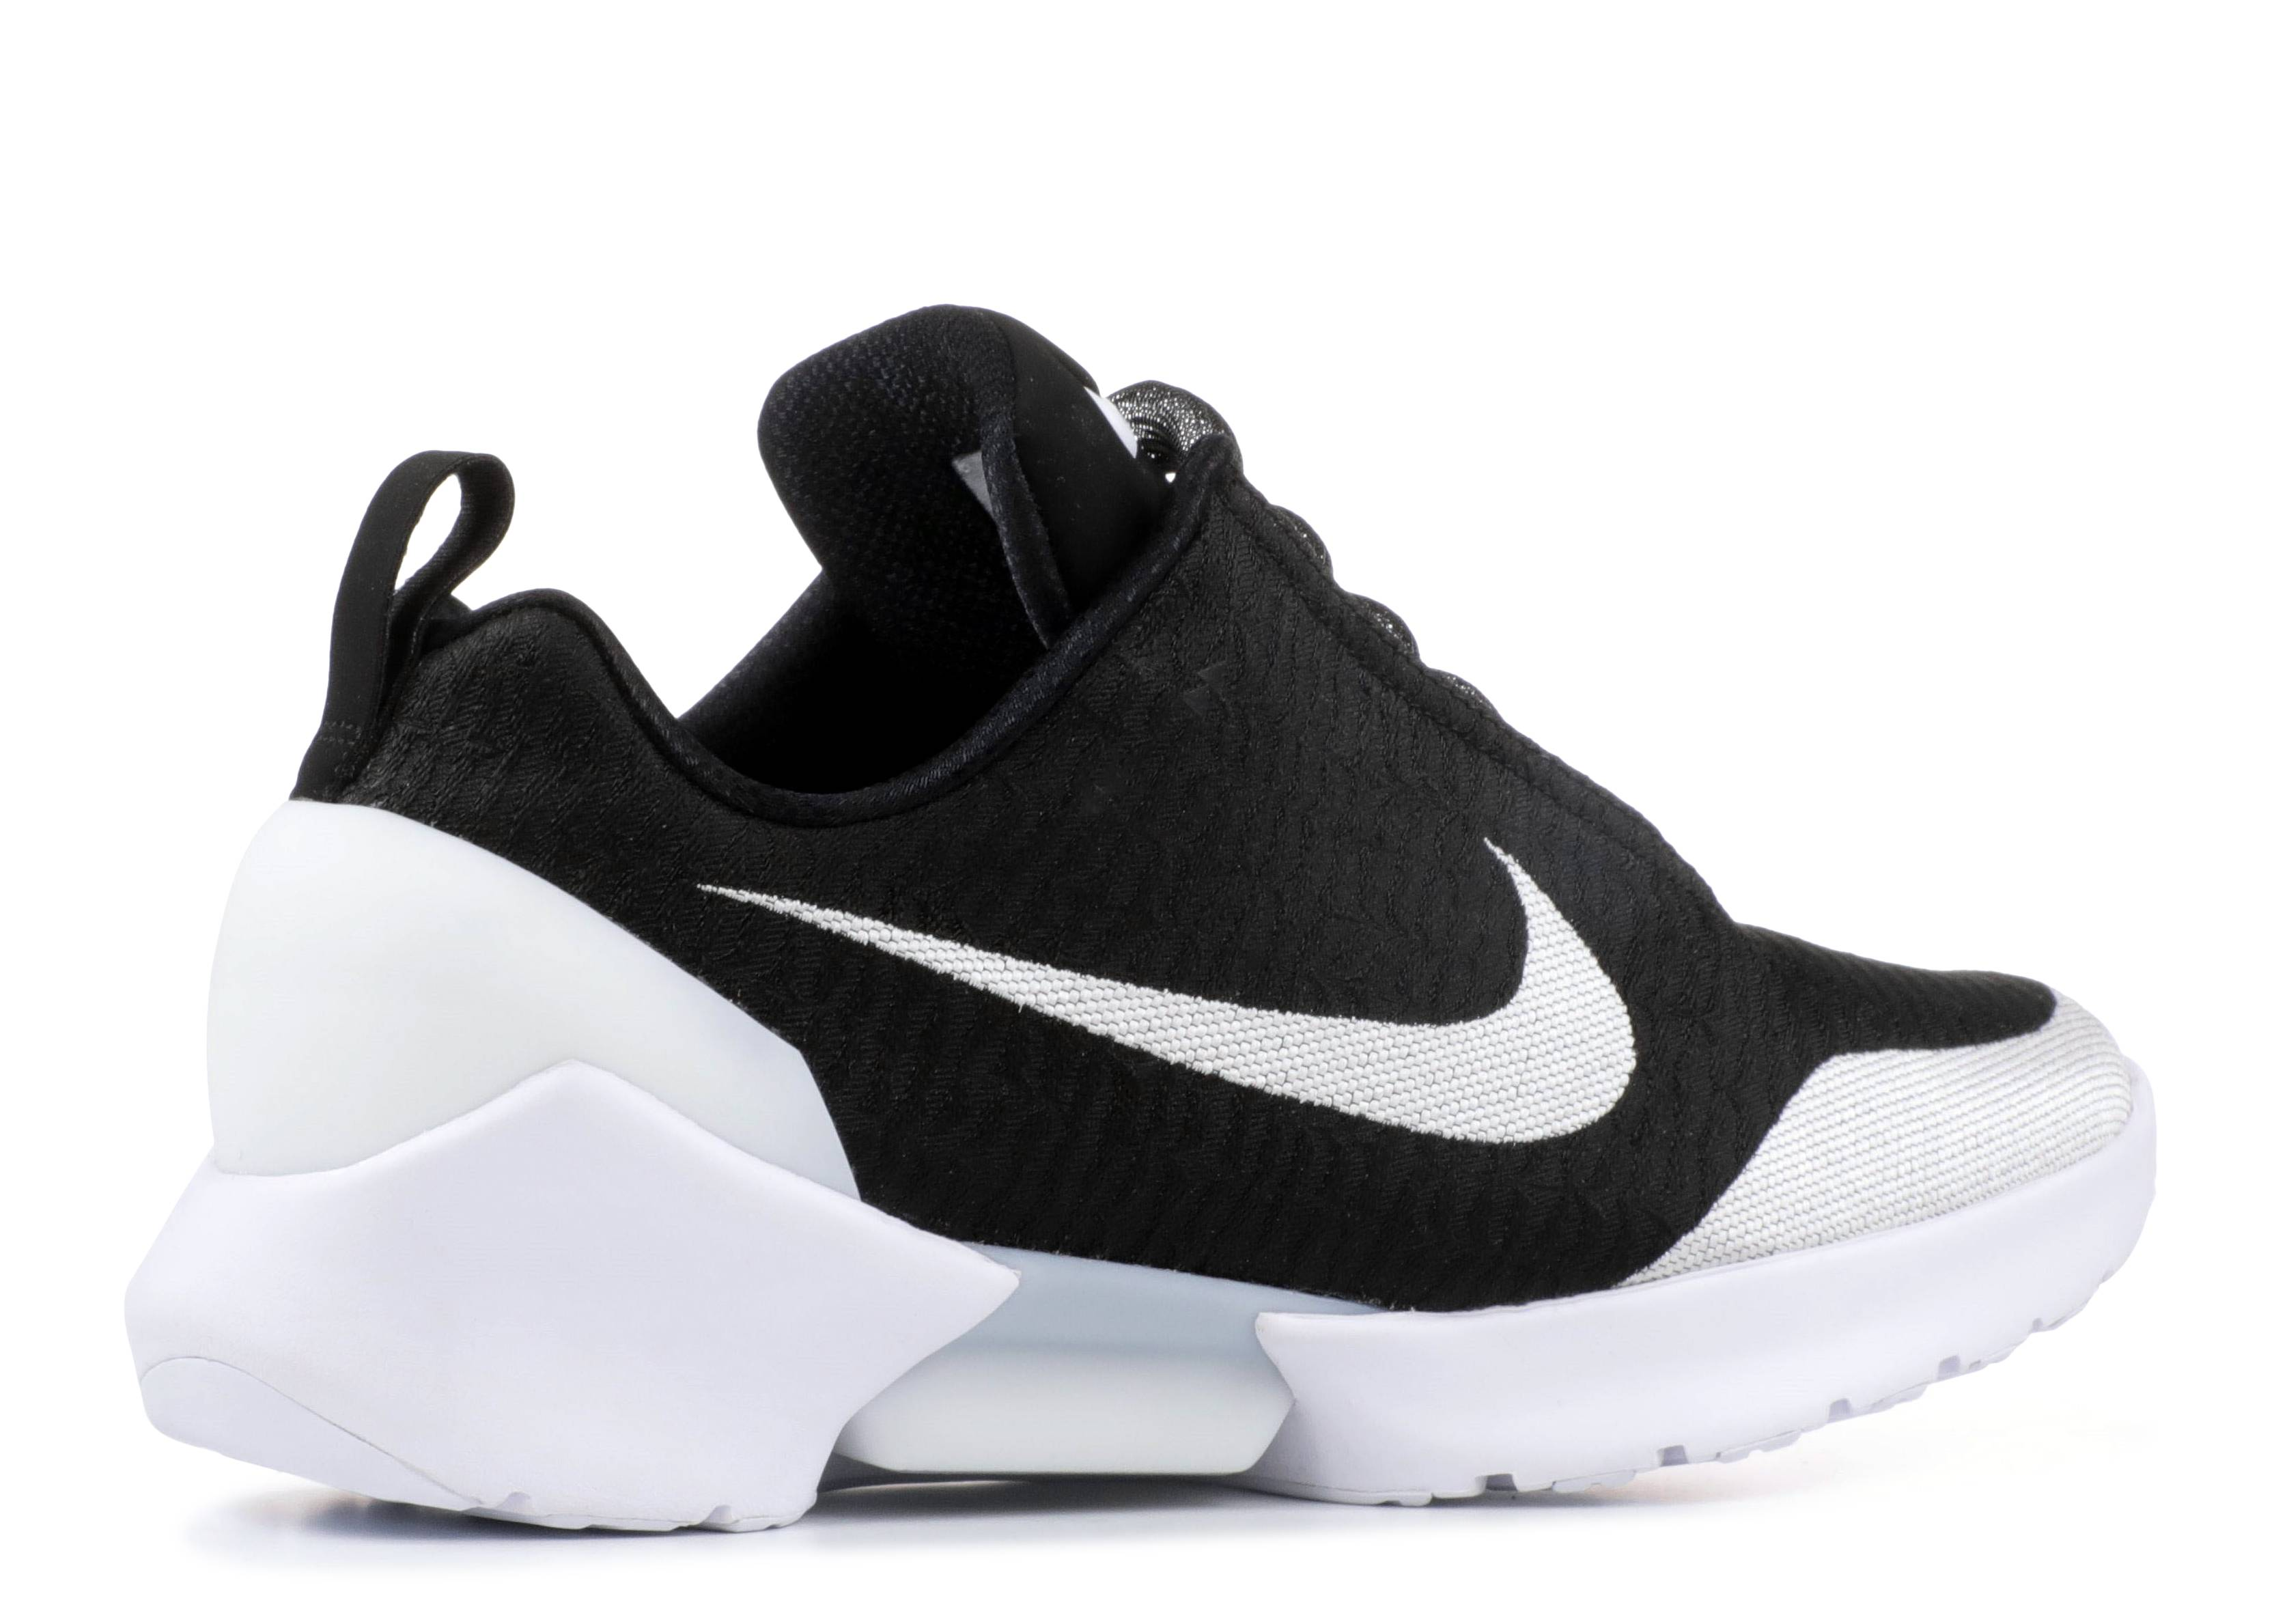 best service 2afd6 ccd17 Nike HyperAdapt 1.0 Black White - 3